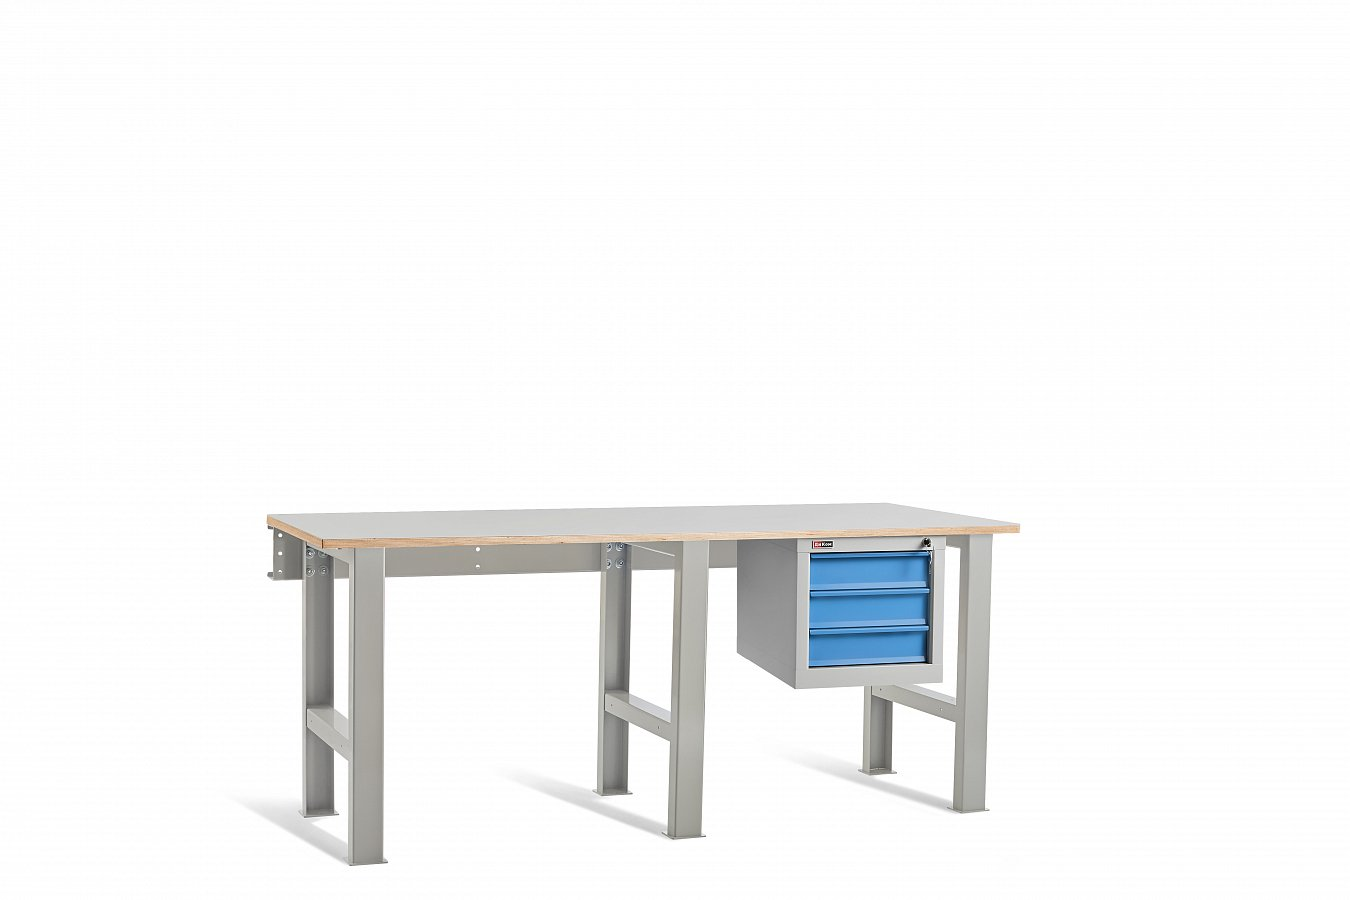 DiKom VL-200-02 Workbench (7)